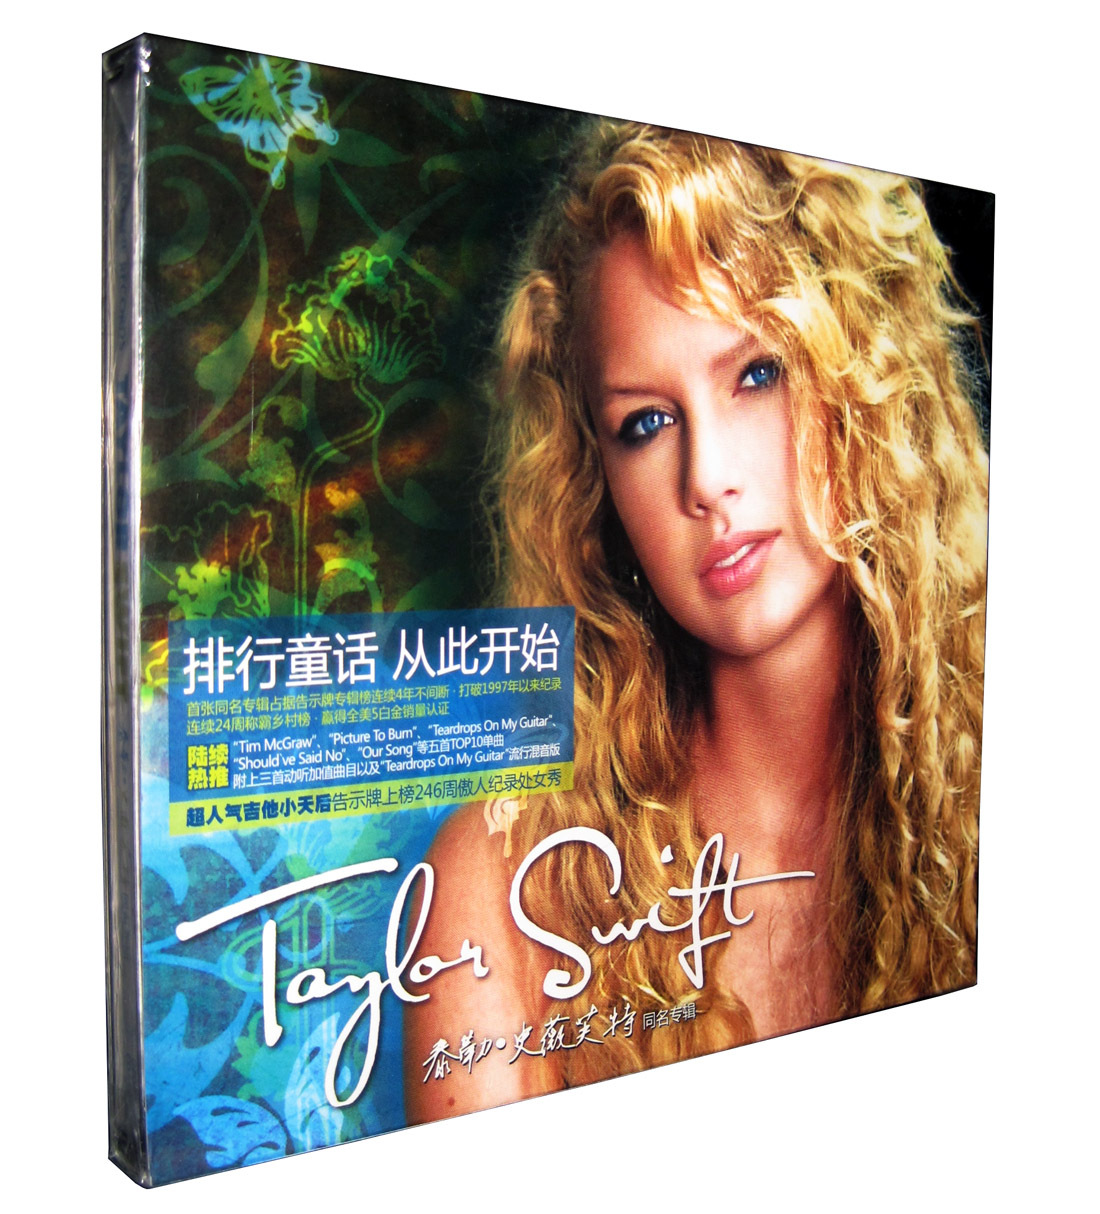 Музыка CD, DVD Taylor Swift (CD) музыка cd dvd cctv cd dsd